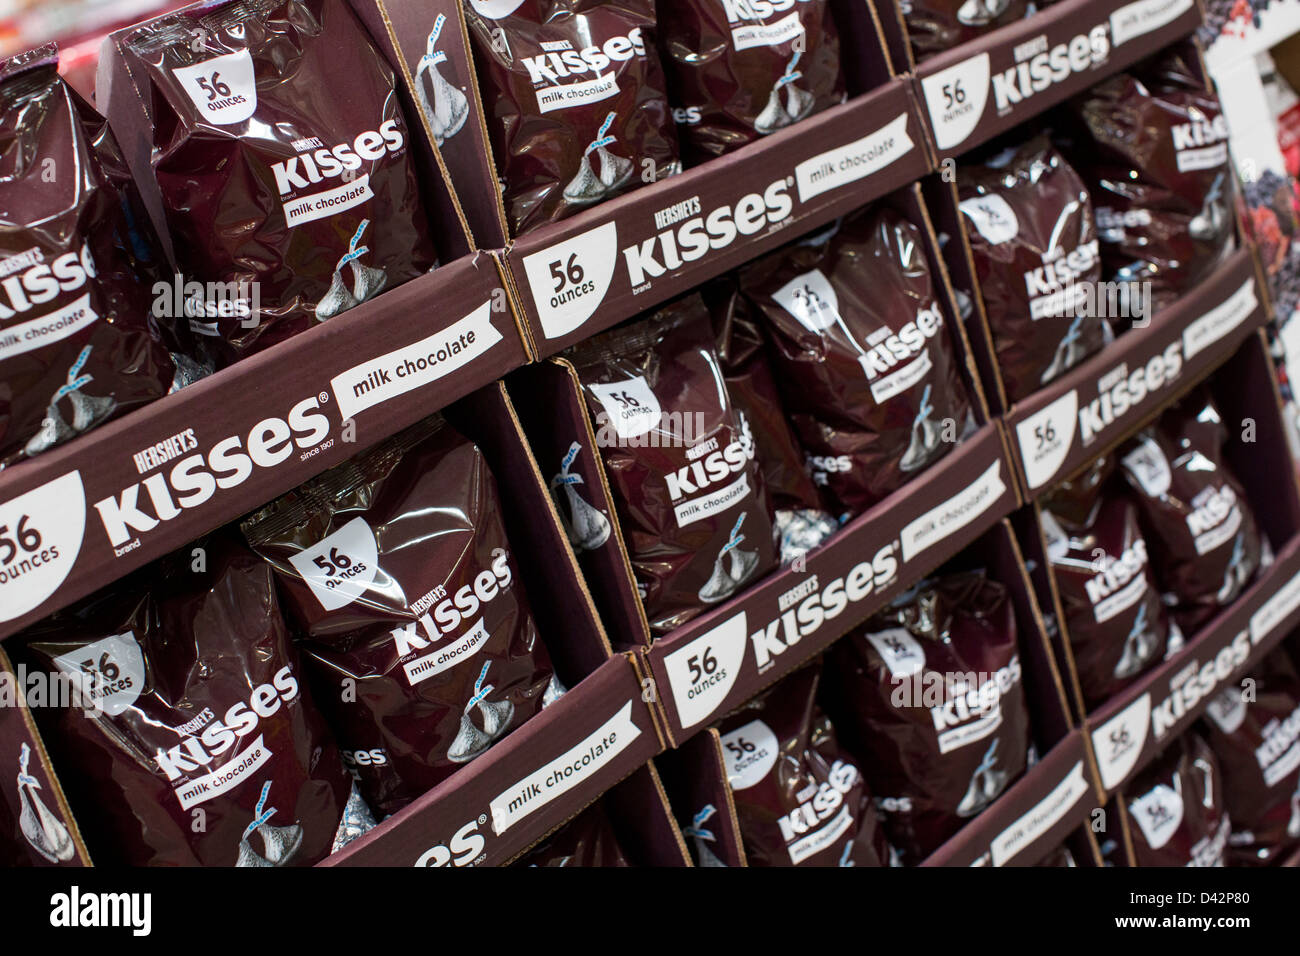 Hersheys kisses on display at a costco wholesale warehouse club hersheys kisses on display at a costco wholesale warehouse club stock photo 54151104 alamy thecheapjerseys Images